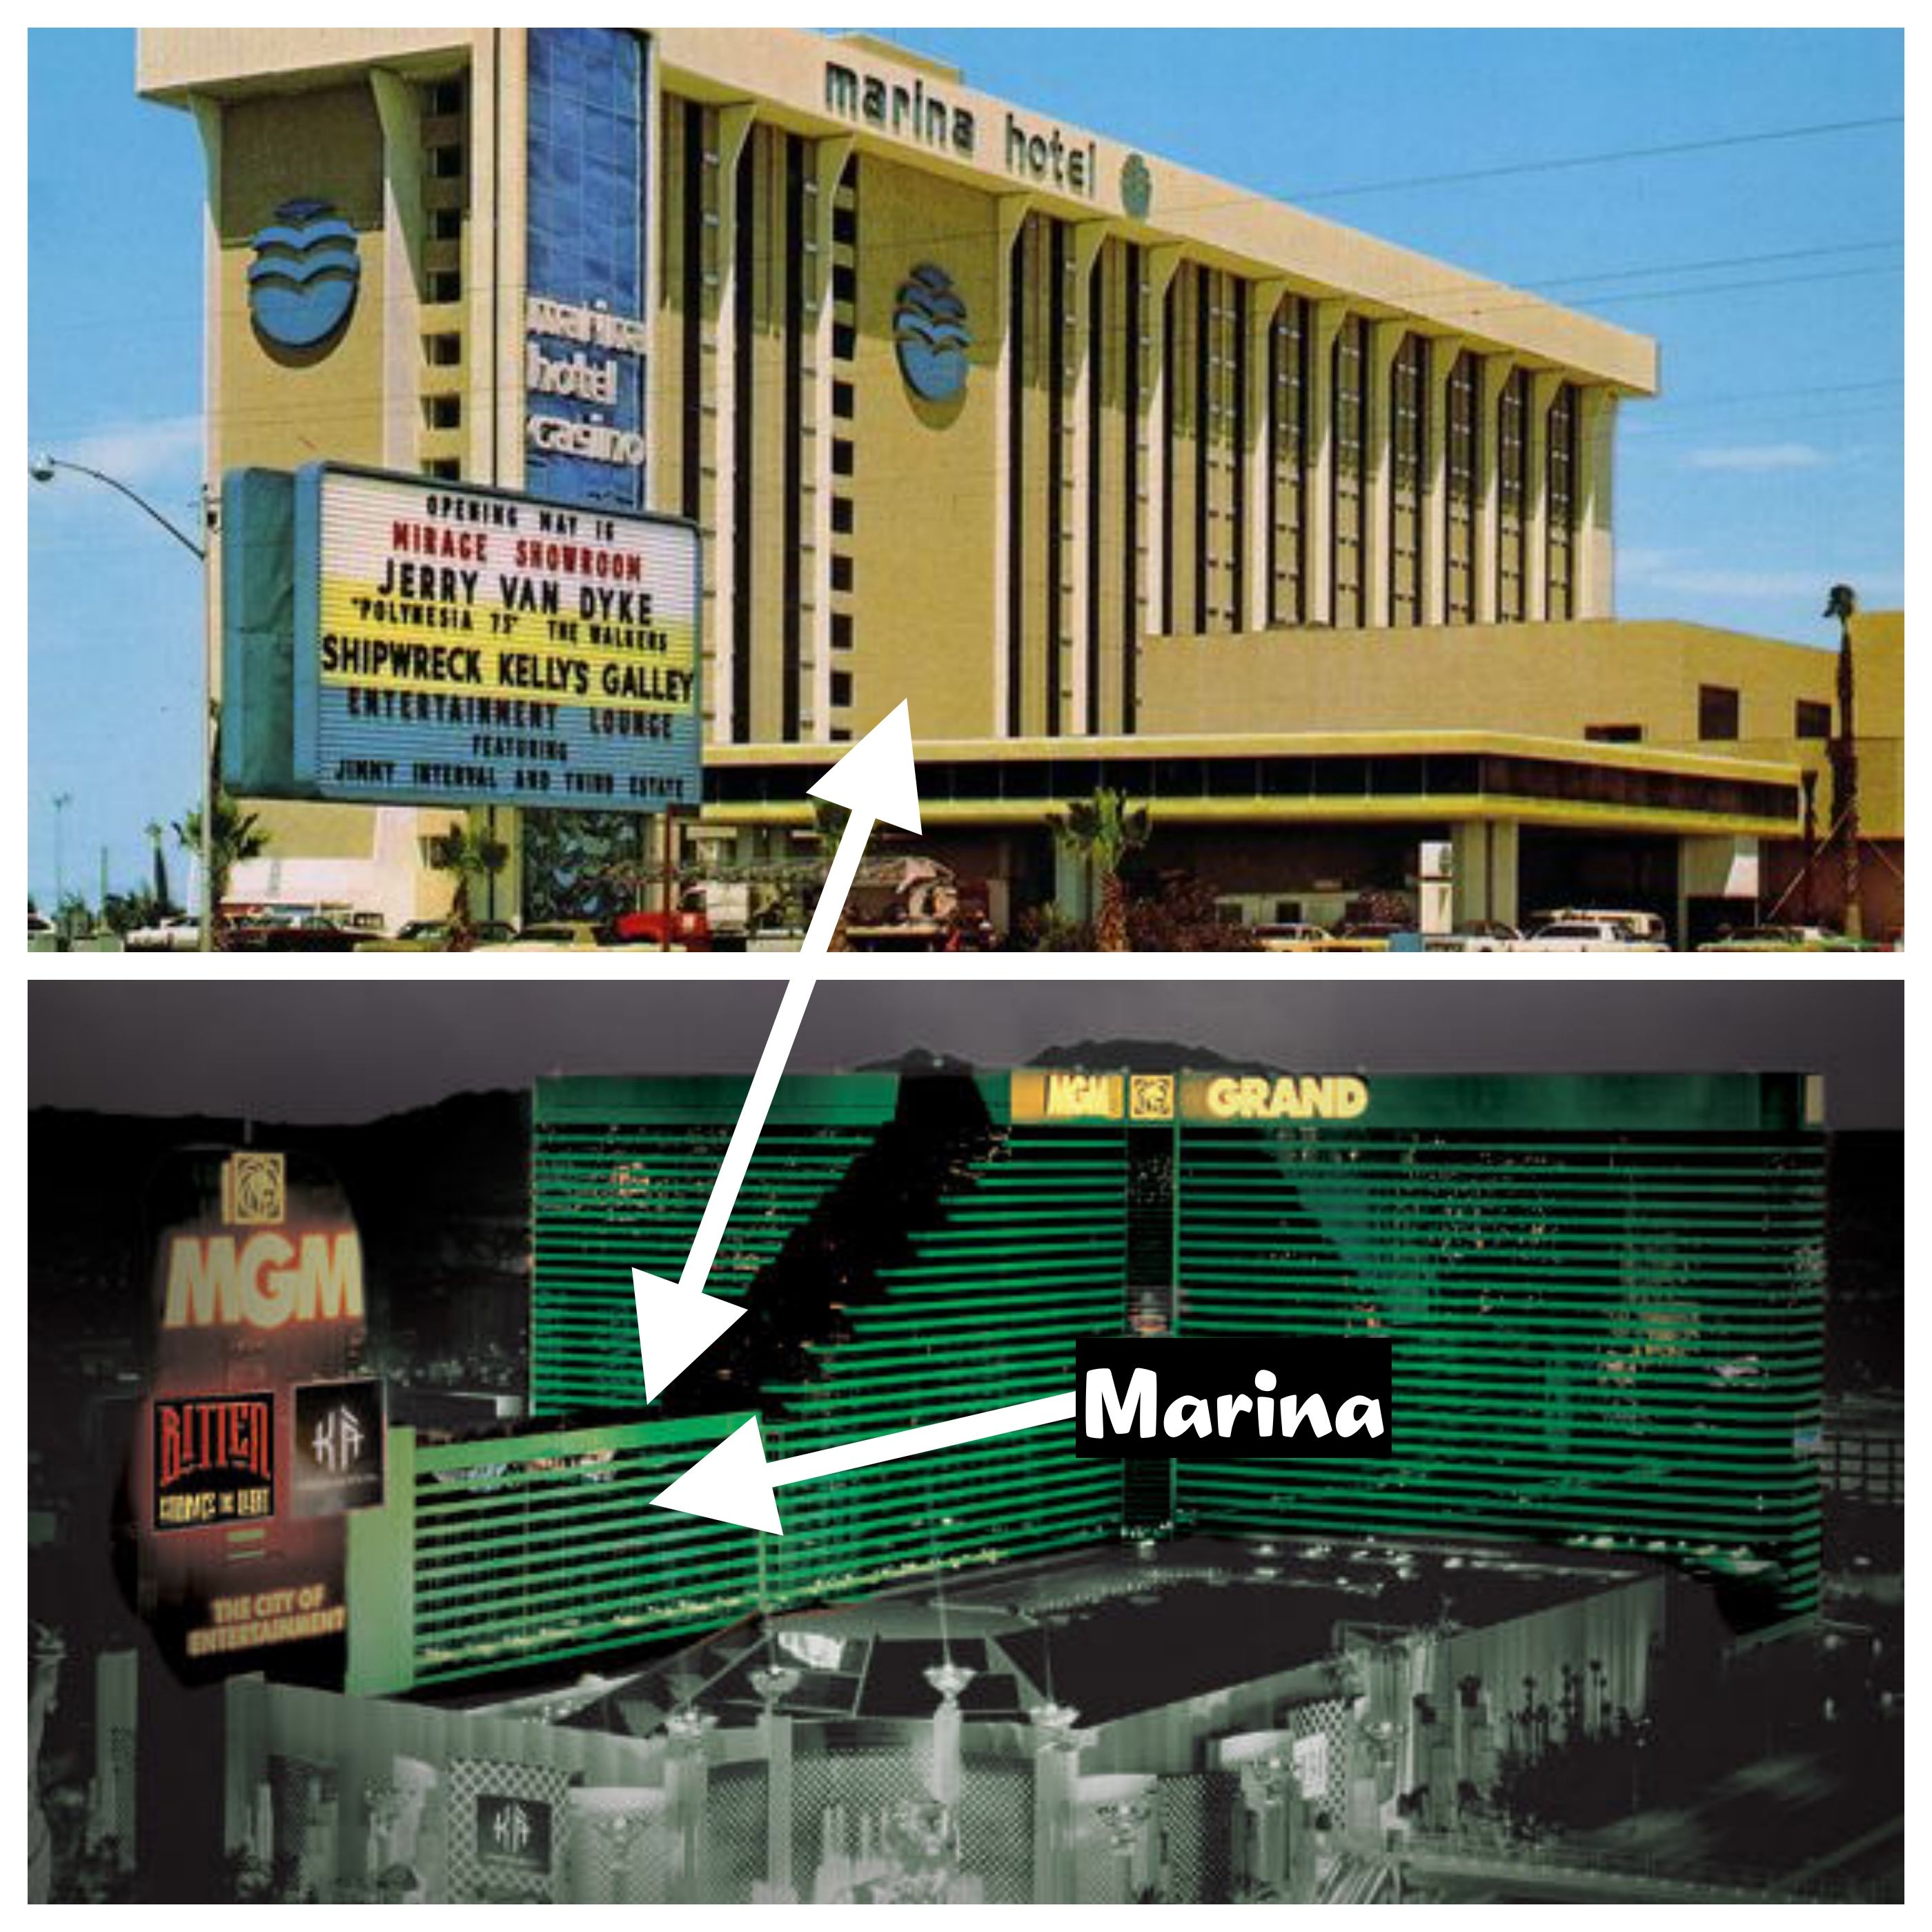 The Marina Has Been Incorporated Into The West Wing Of The Mgm Grand Las Vegas Resorts Las Vegas Photos Old Vegas